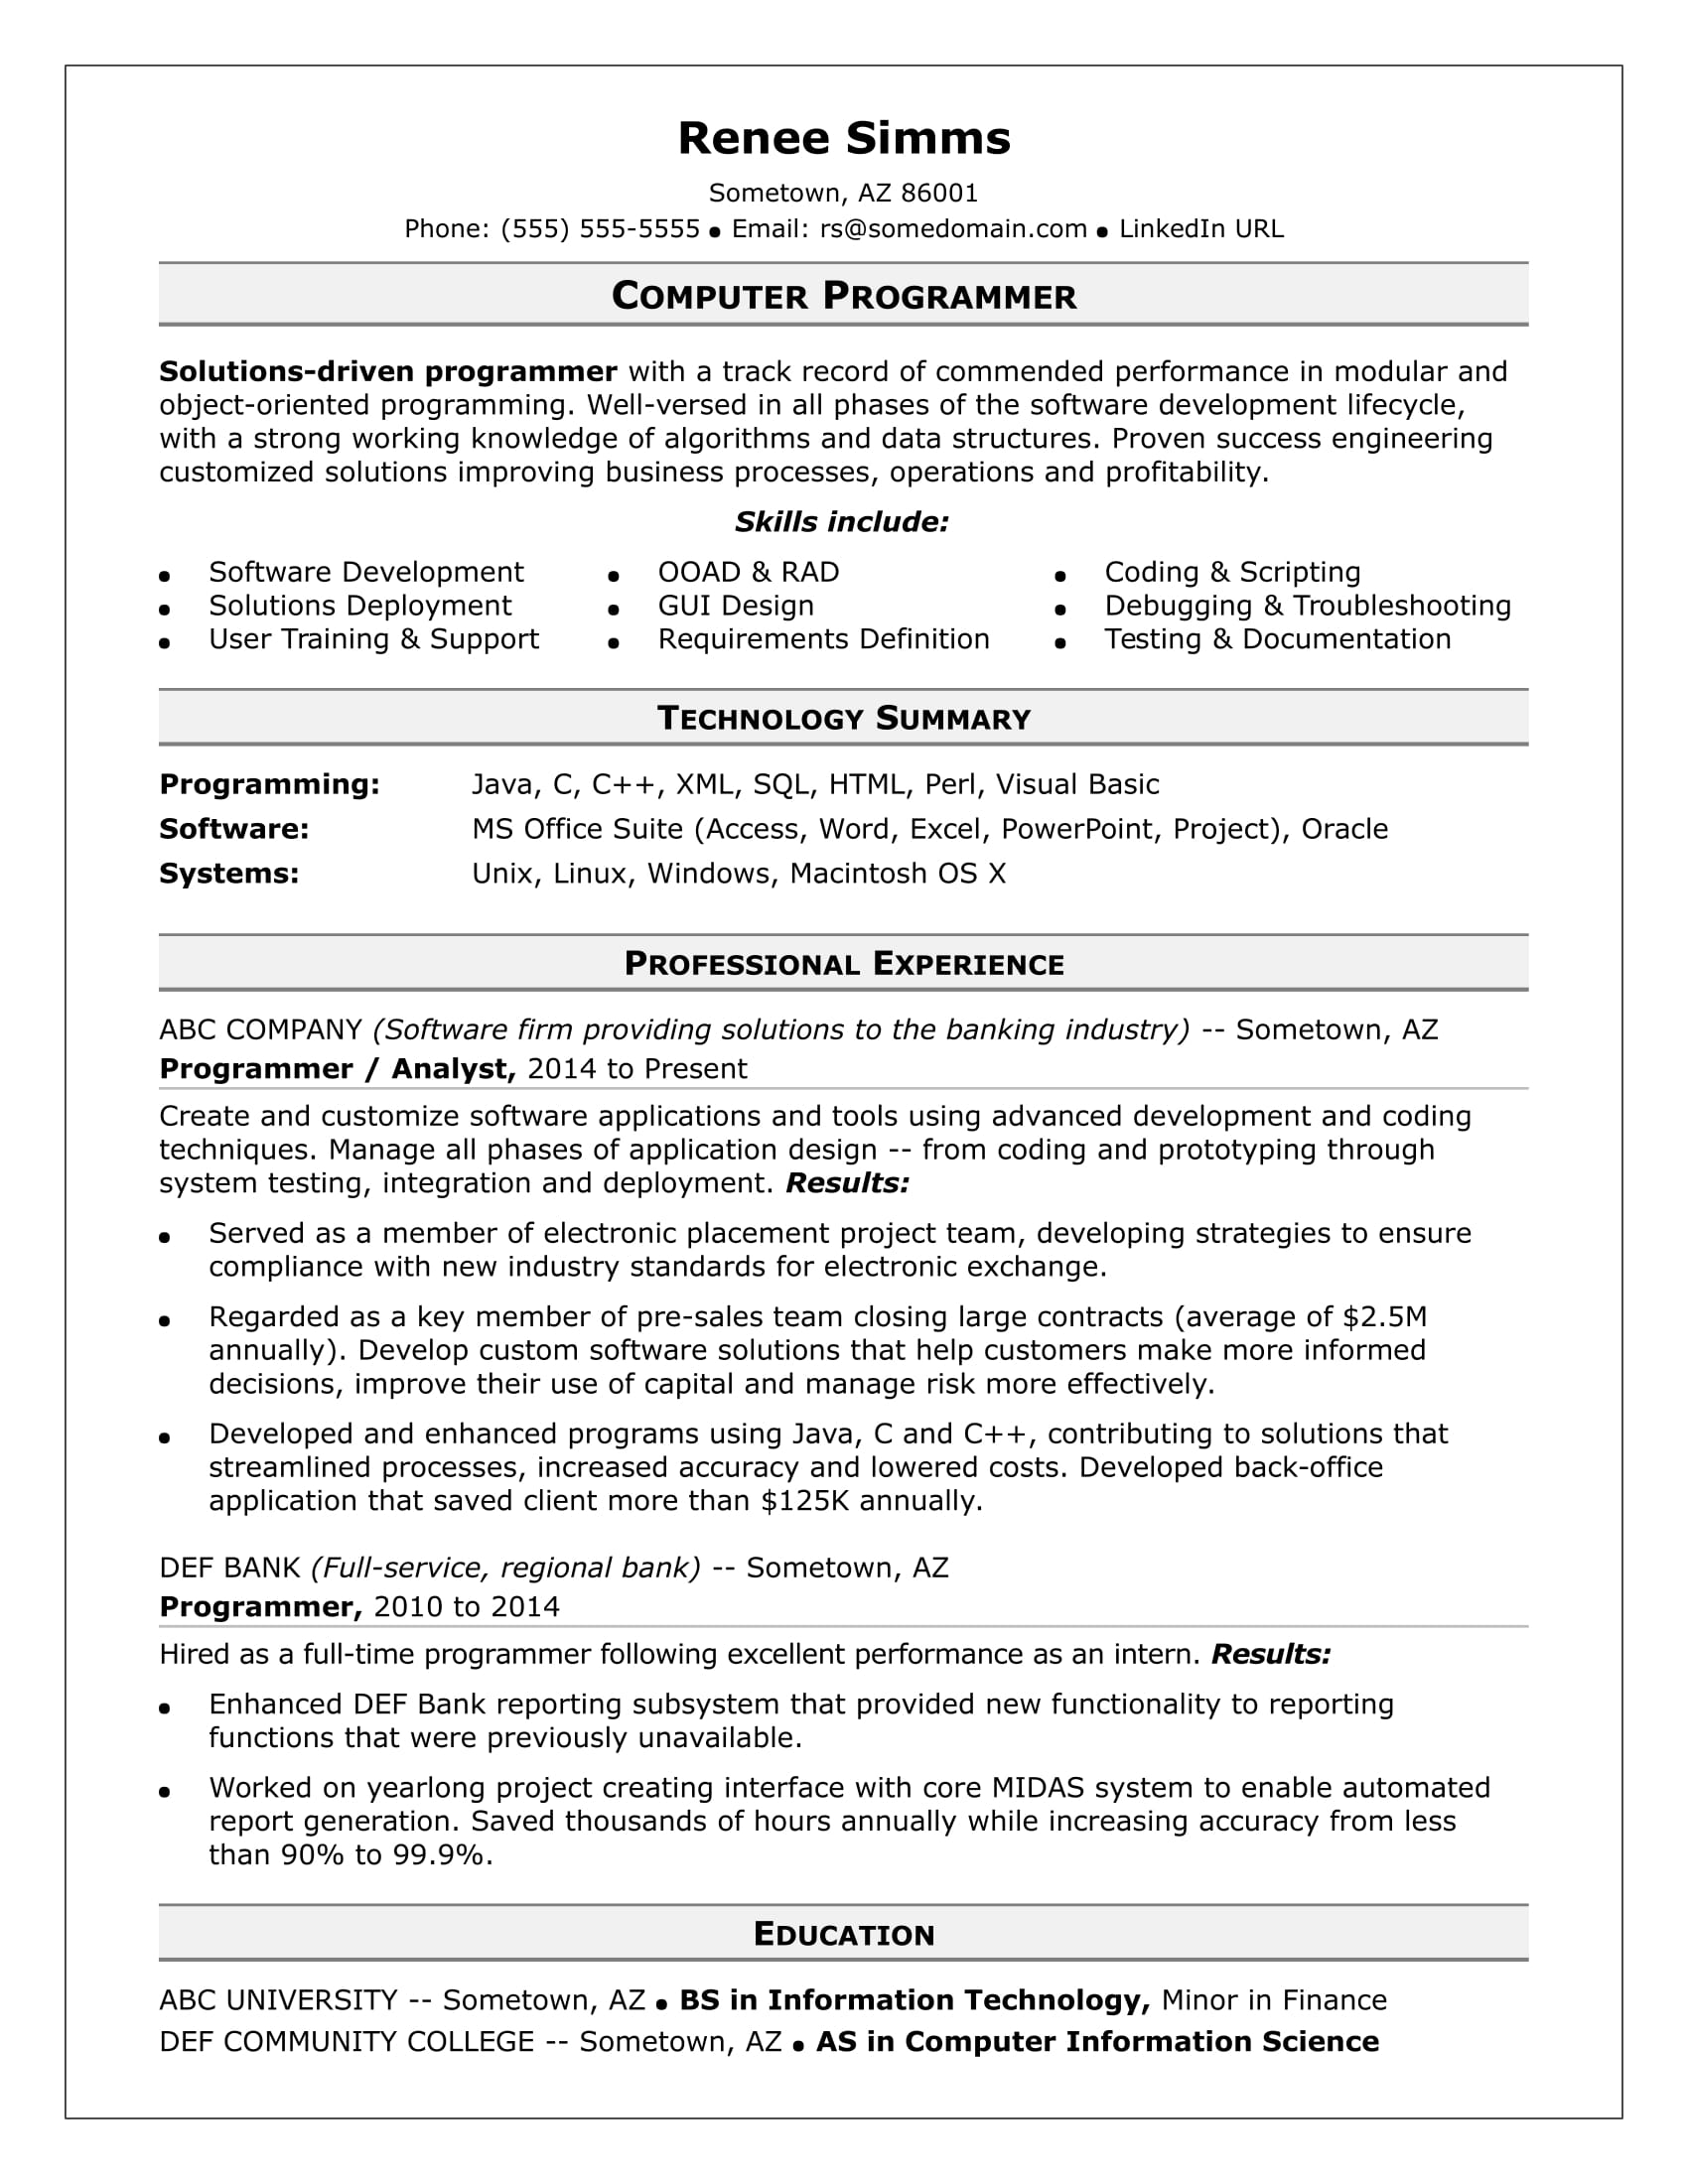 Sample resume for a midlevel computer programmer monster sample resume for a midlevel computer programmer yelopaper Images